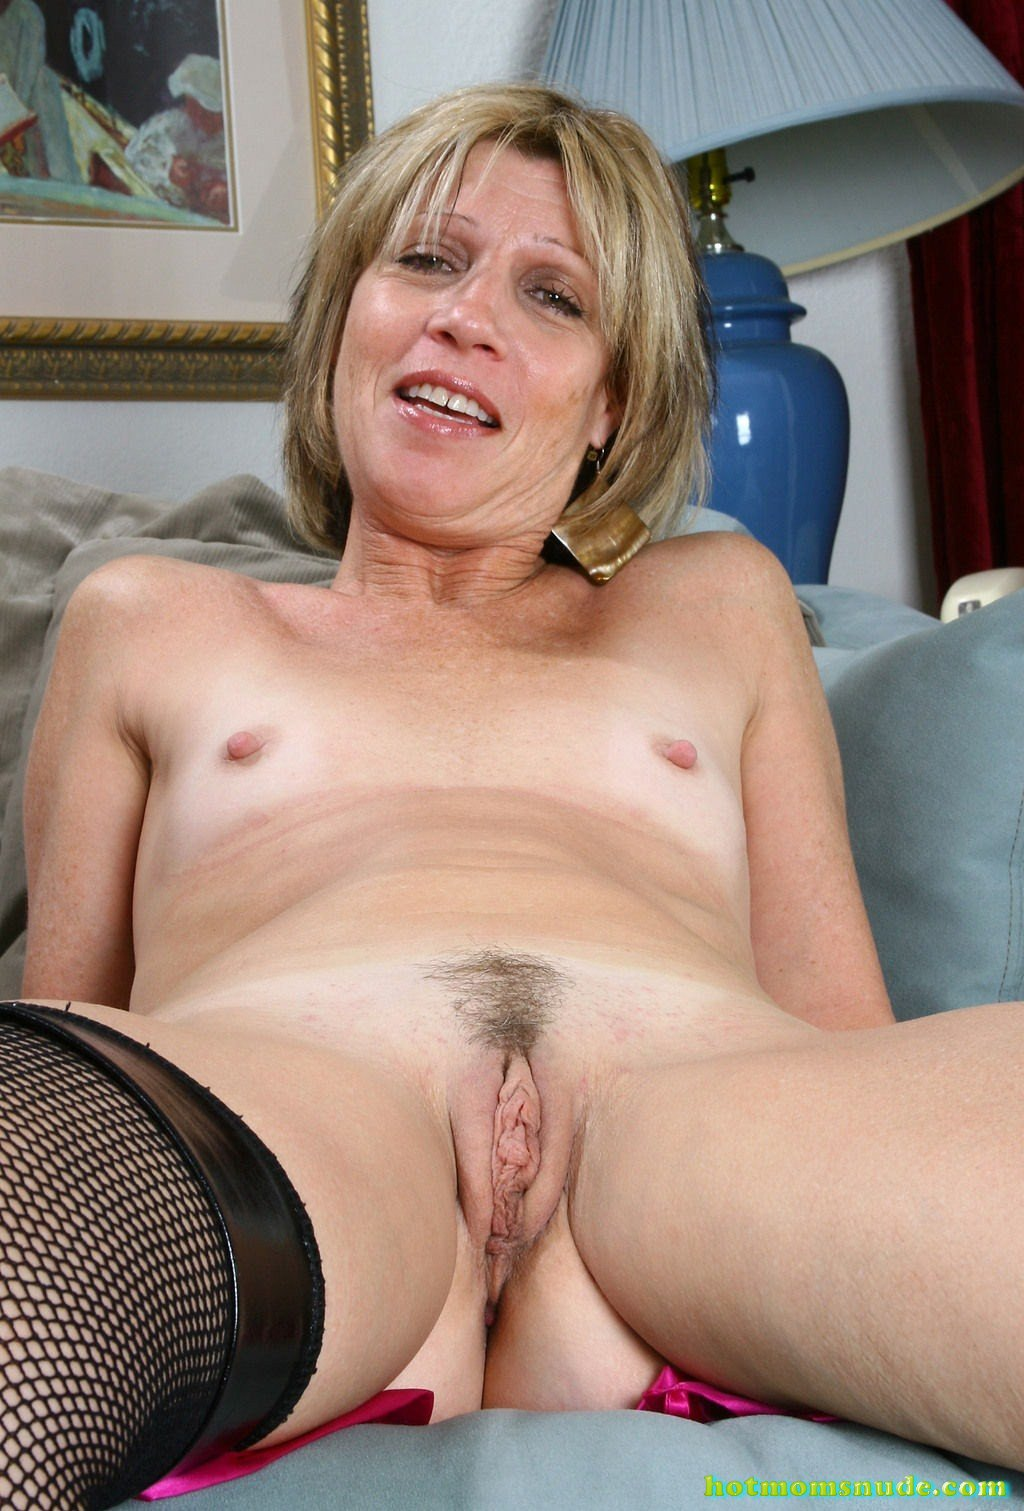 Milf Rosetta nude pics and biography